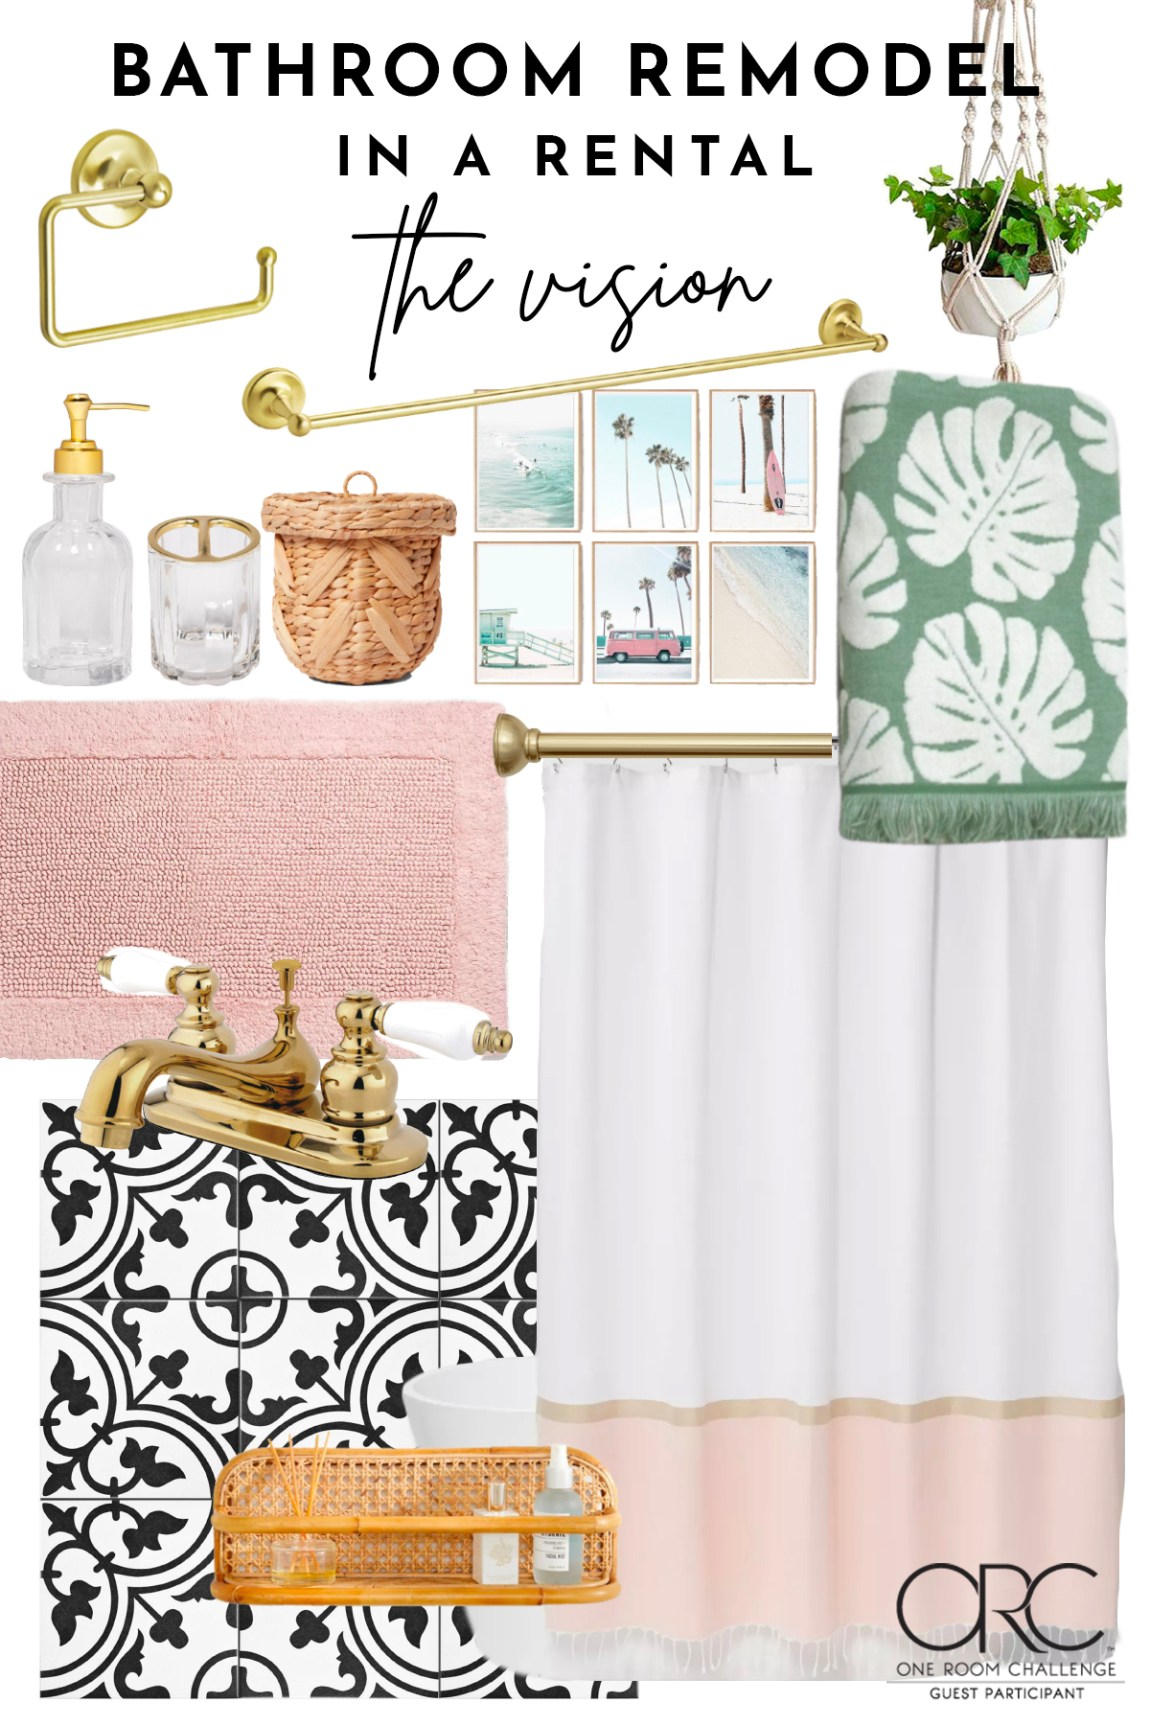 ONE ROOM CHALLENGE SPRING 2020: BATHROOM REMODEL INSPO